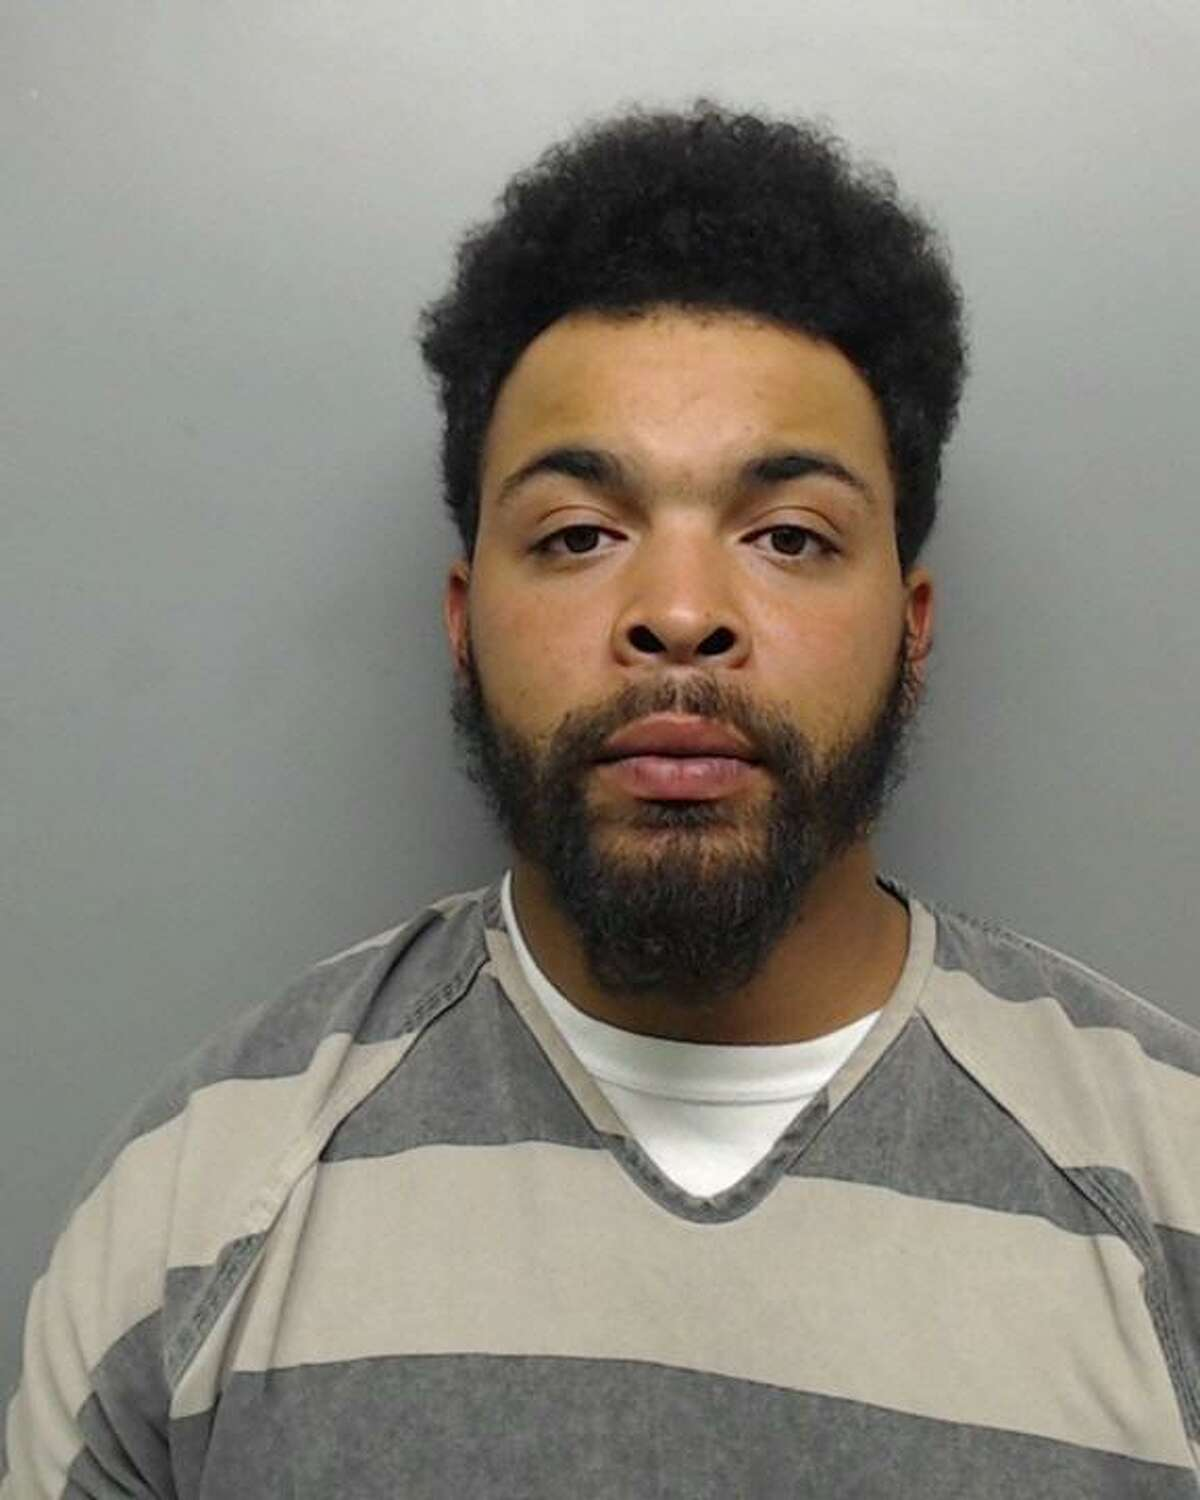 Diandre Jamall Shelton, 25, was charged with aggravated assault with a firearm.